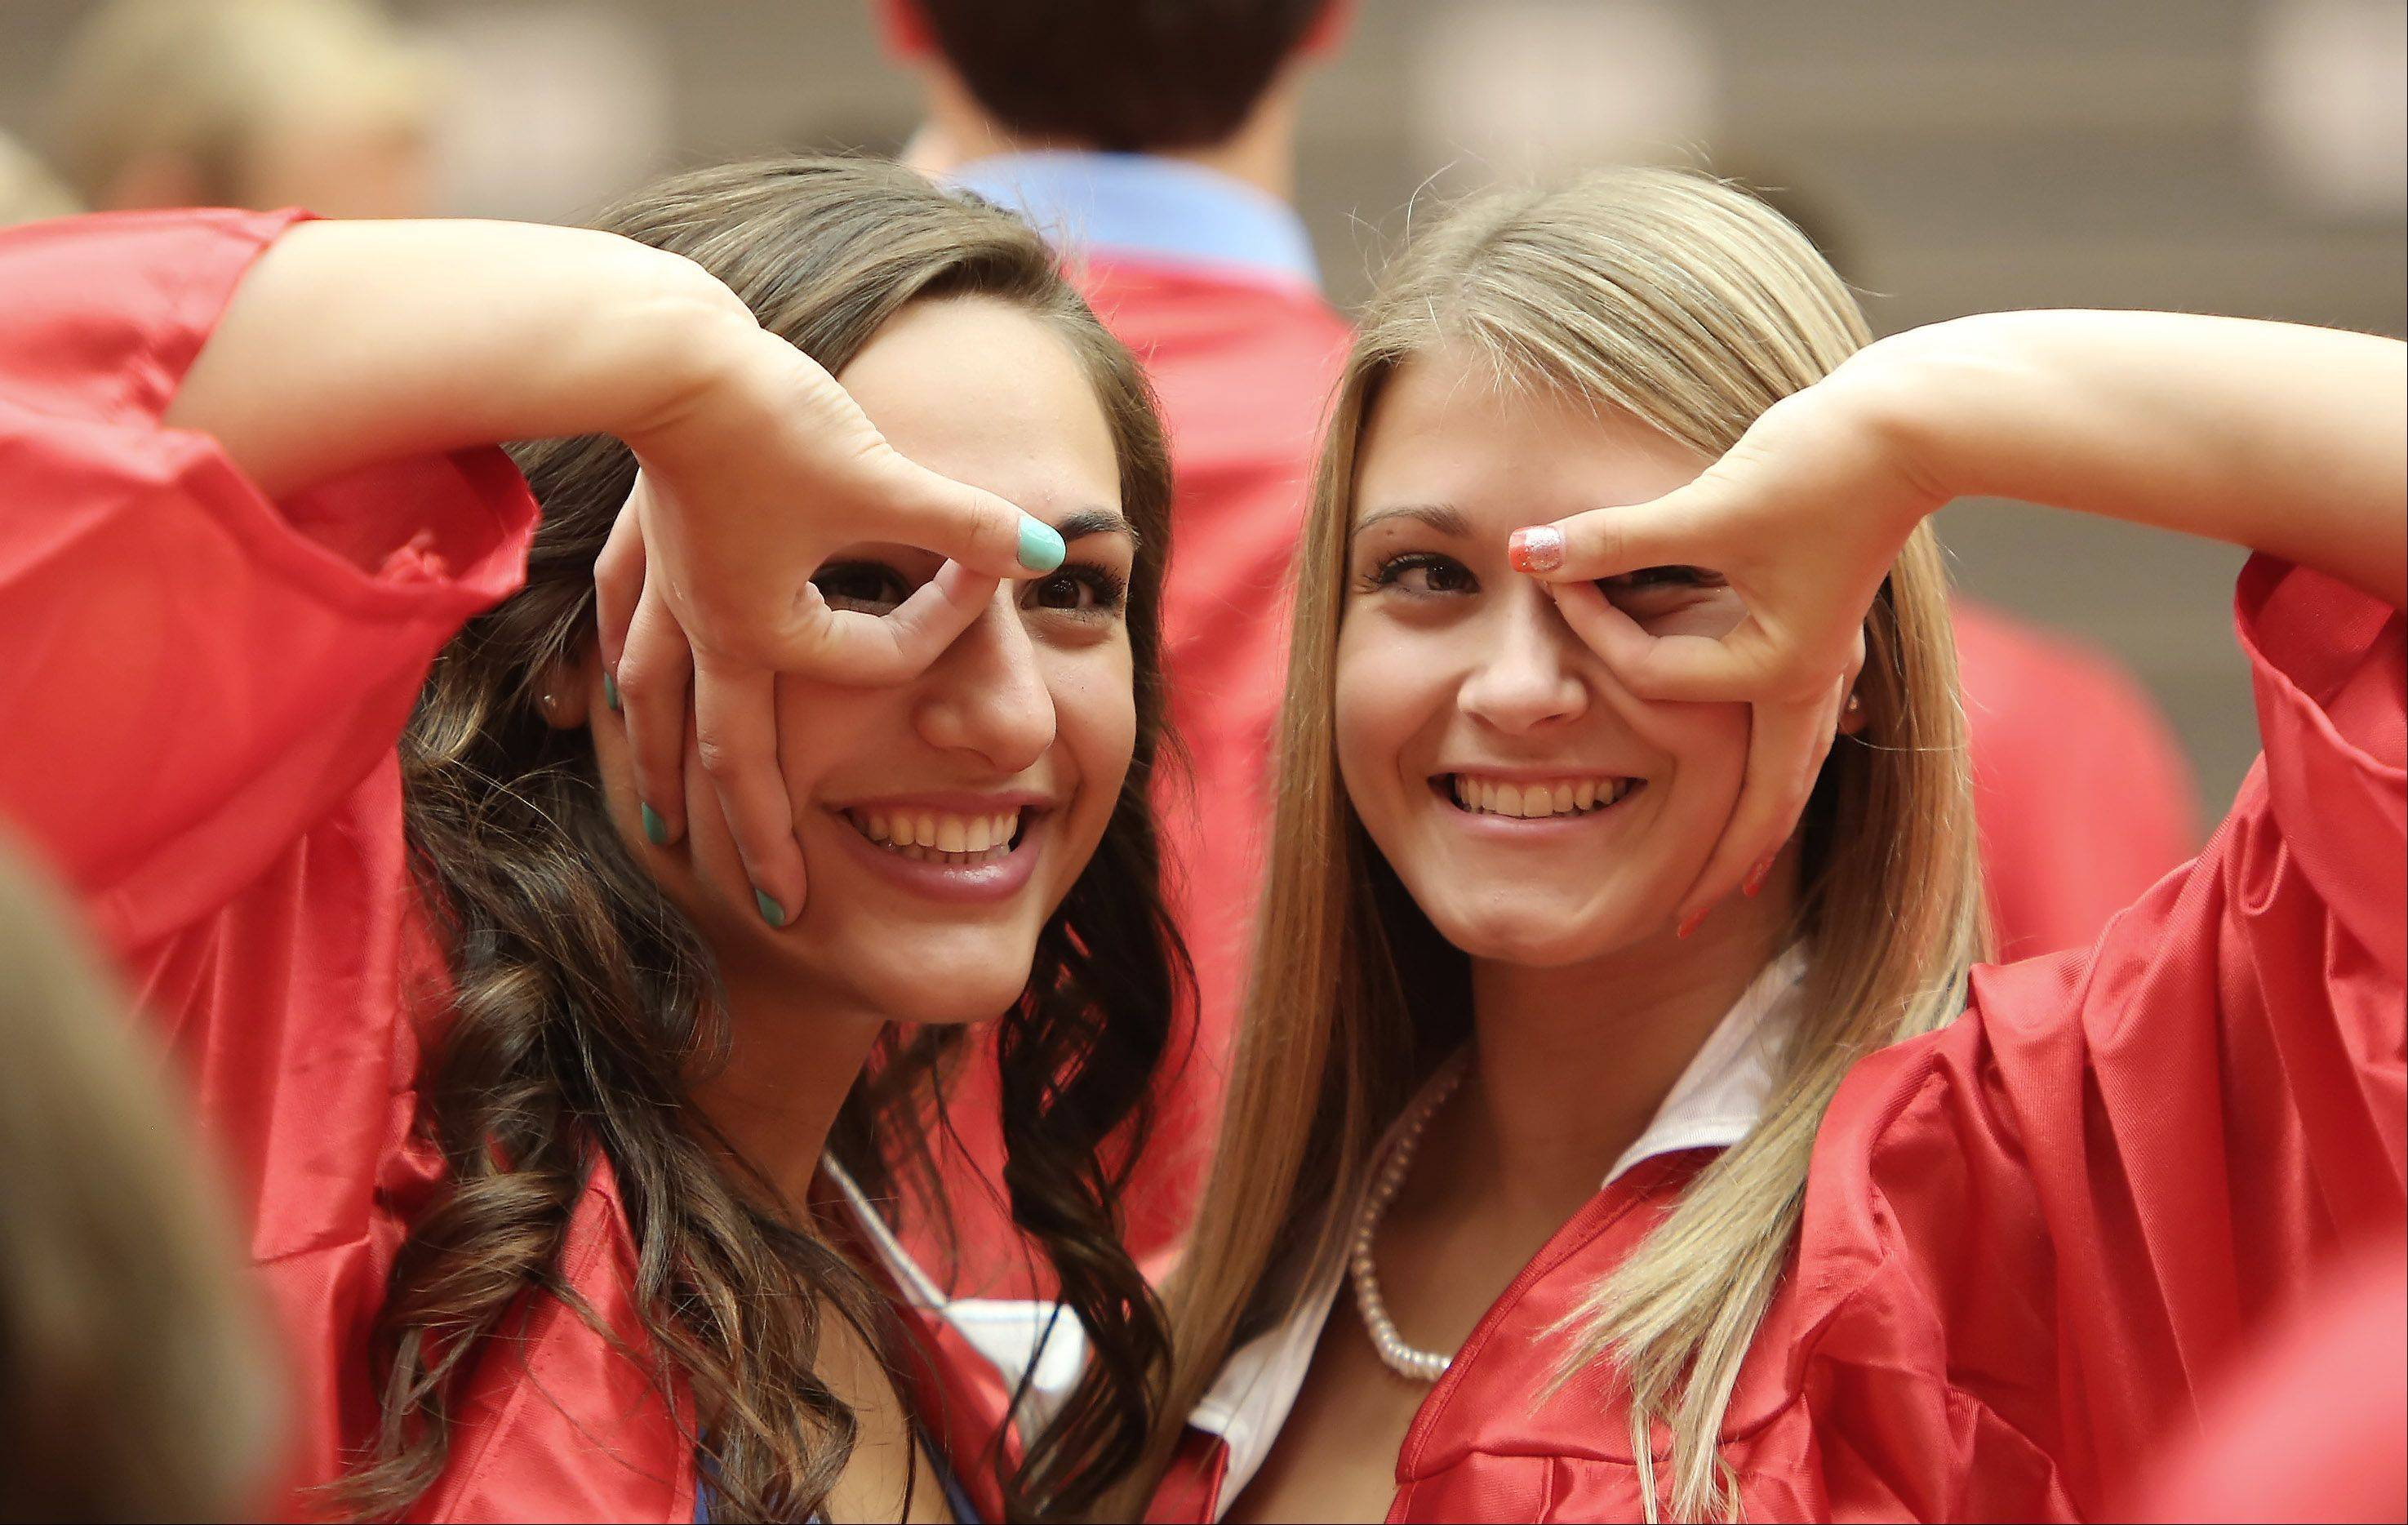 McKenzie Becker, left, and Hannah Fanella pose for a picture during the Grant High School graduation ceremony on Sunday. There were 399 seniors graduating this year at the school.